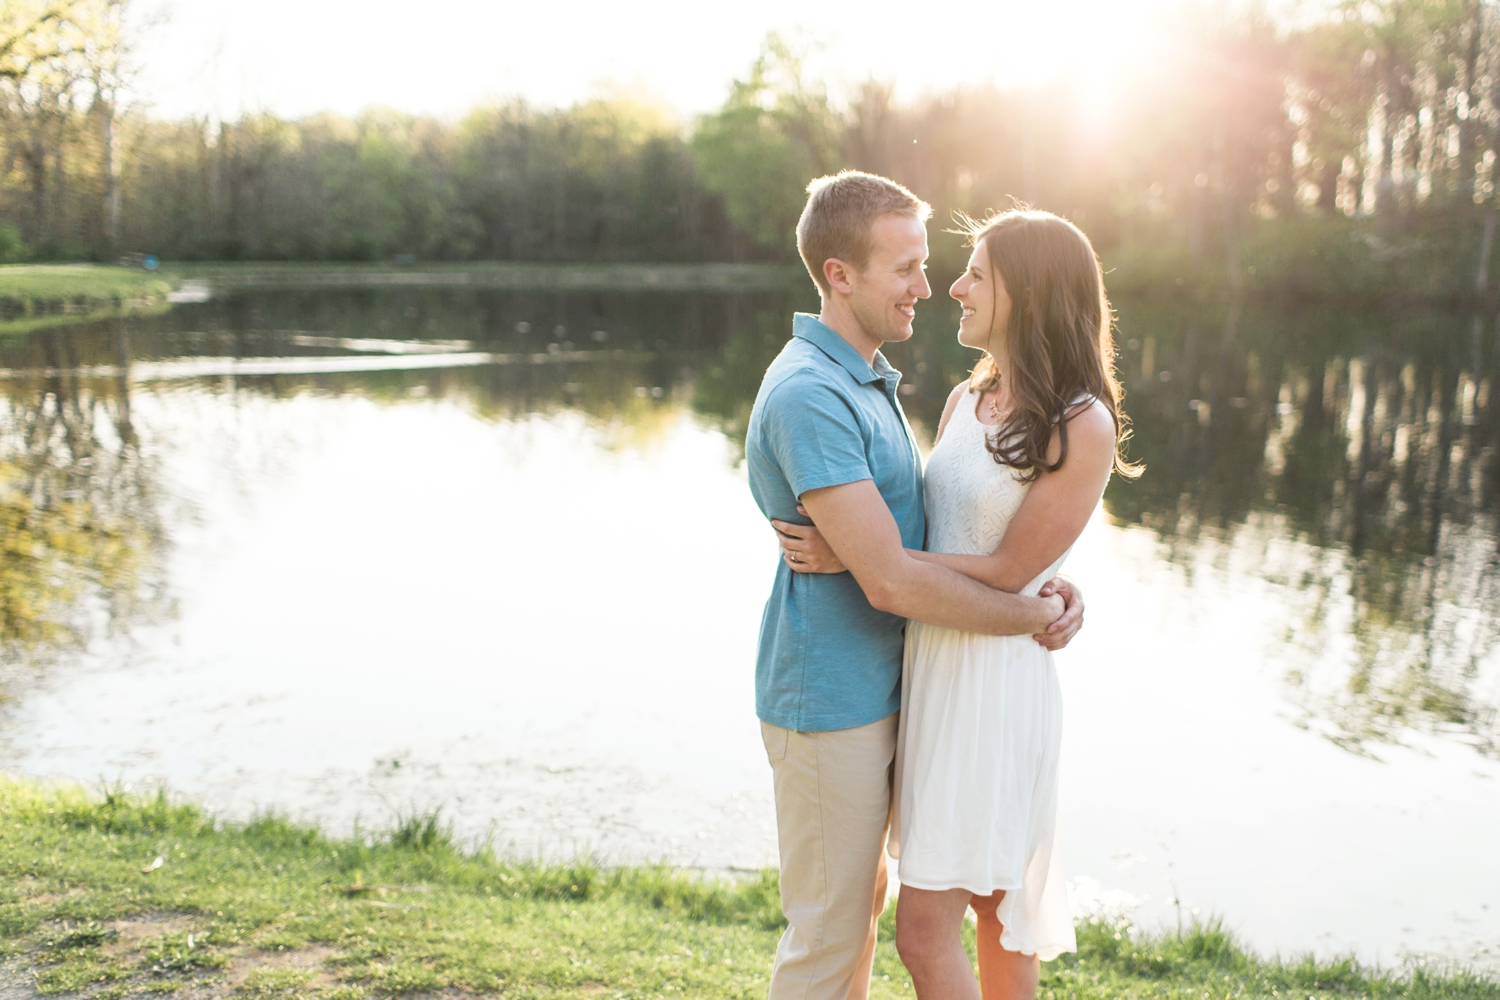 indianapolis_indiana_wedding_photographer_eagle_creek_engagement_chloe_luka_photography_6377.jpg